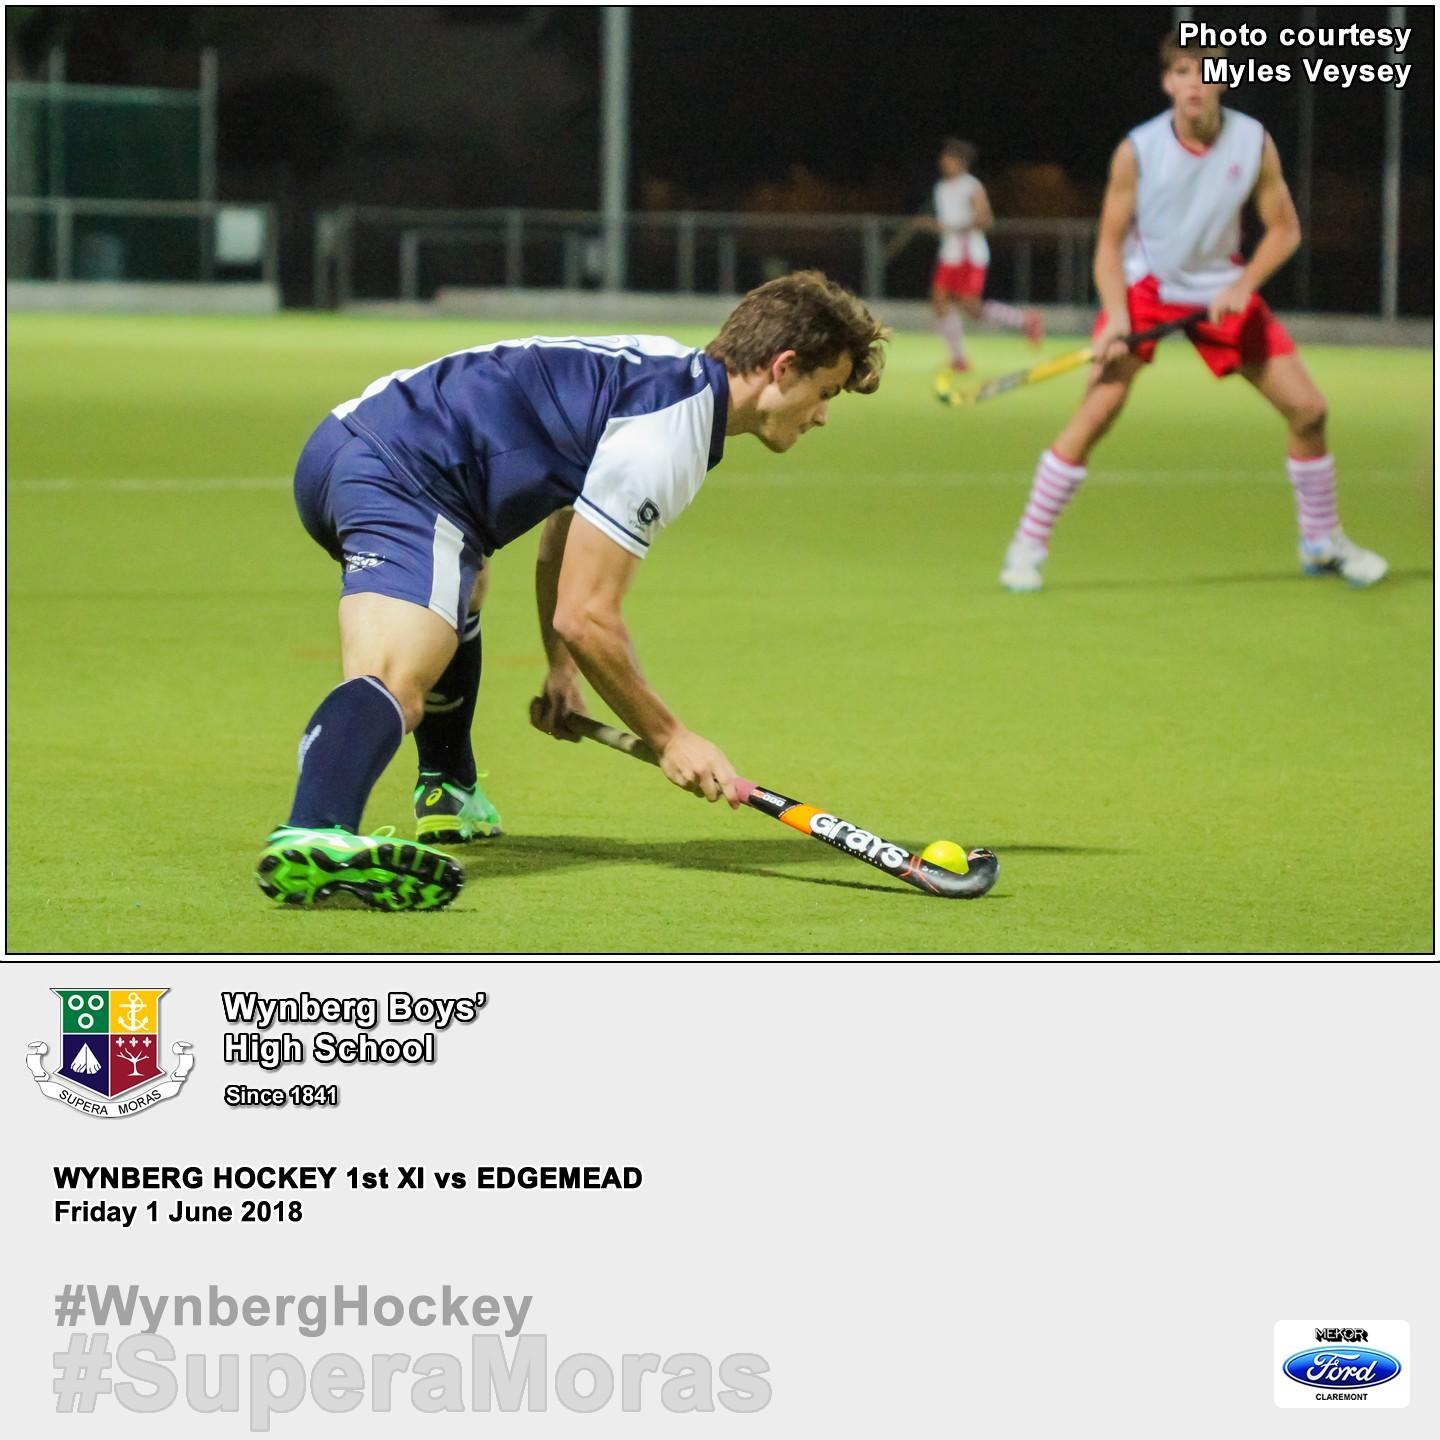 1st XI vs Edgemead, Album II, Friday 1 June 2018